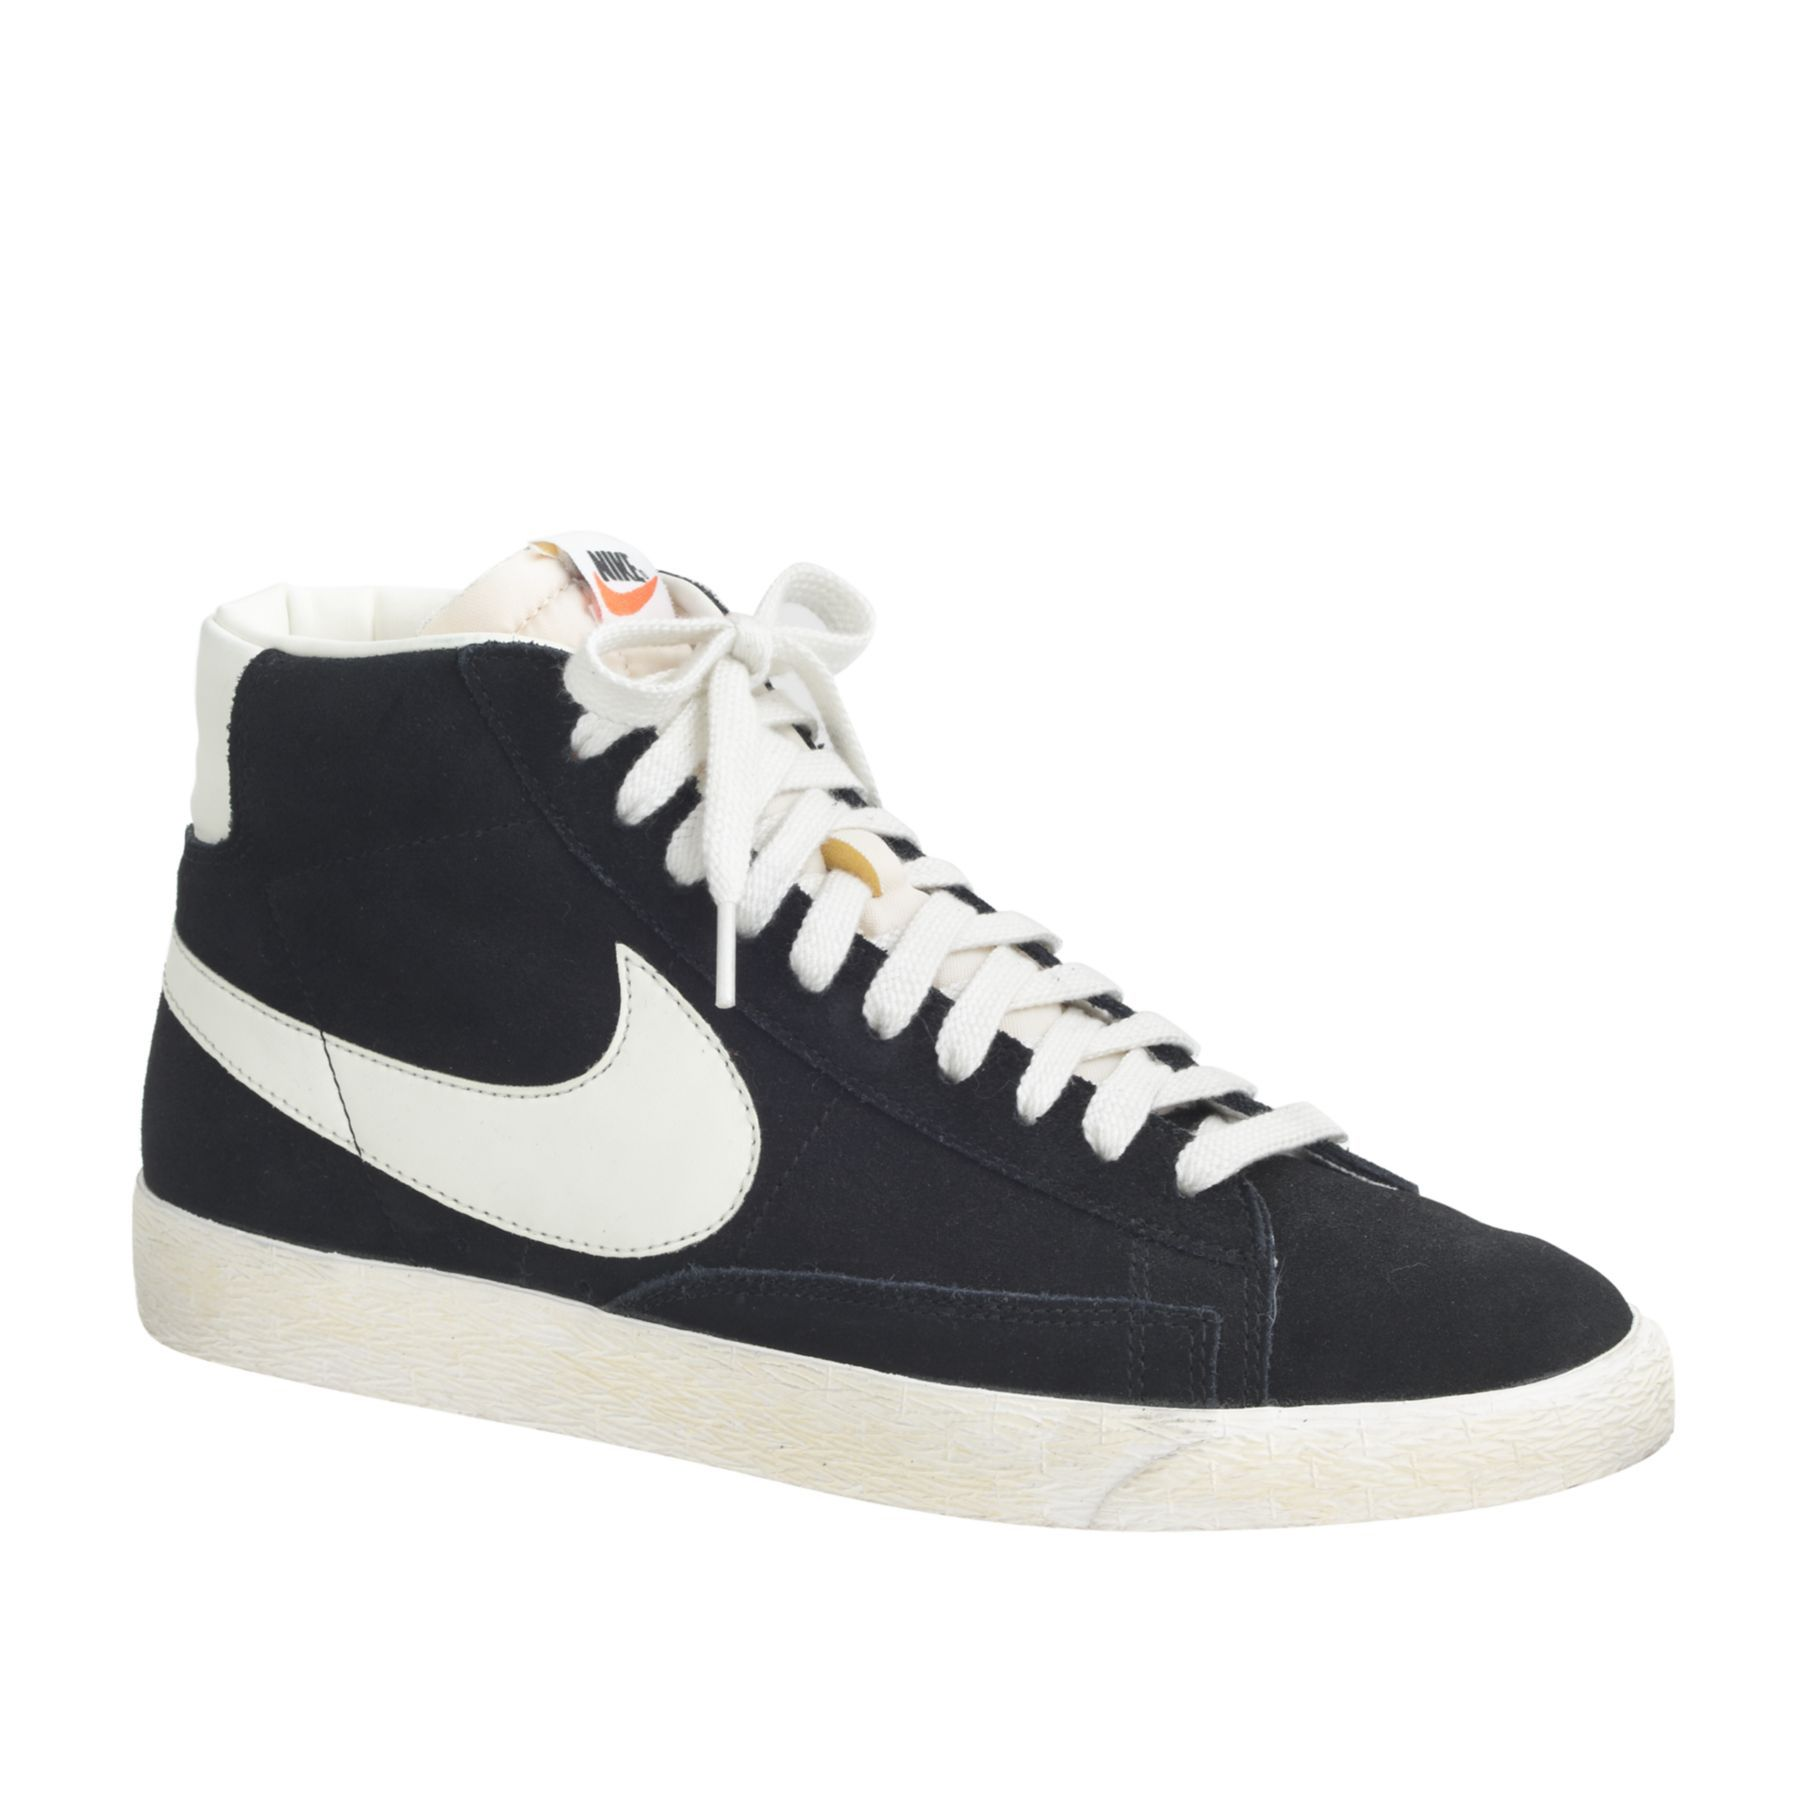 f95bddce1c2f Men s Nike Blazer high suede vintage sneakers in black sail at J.Crew.